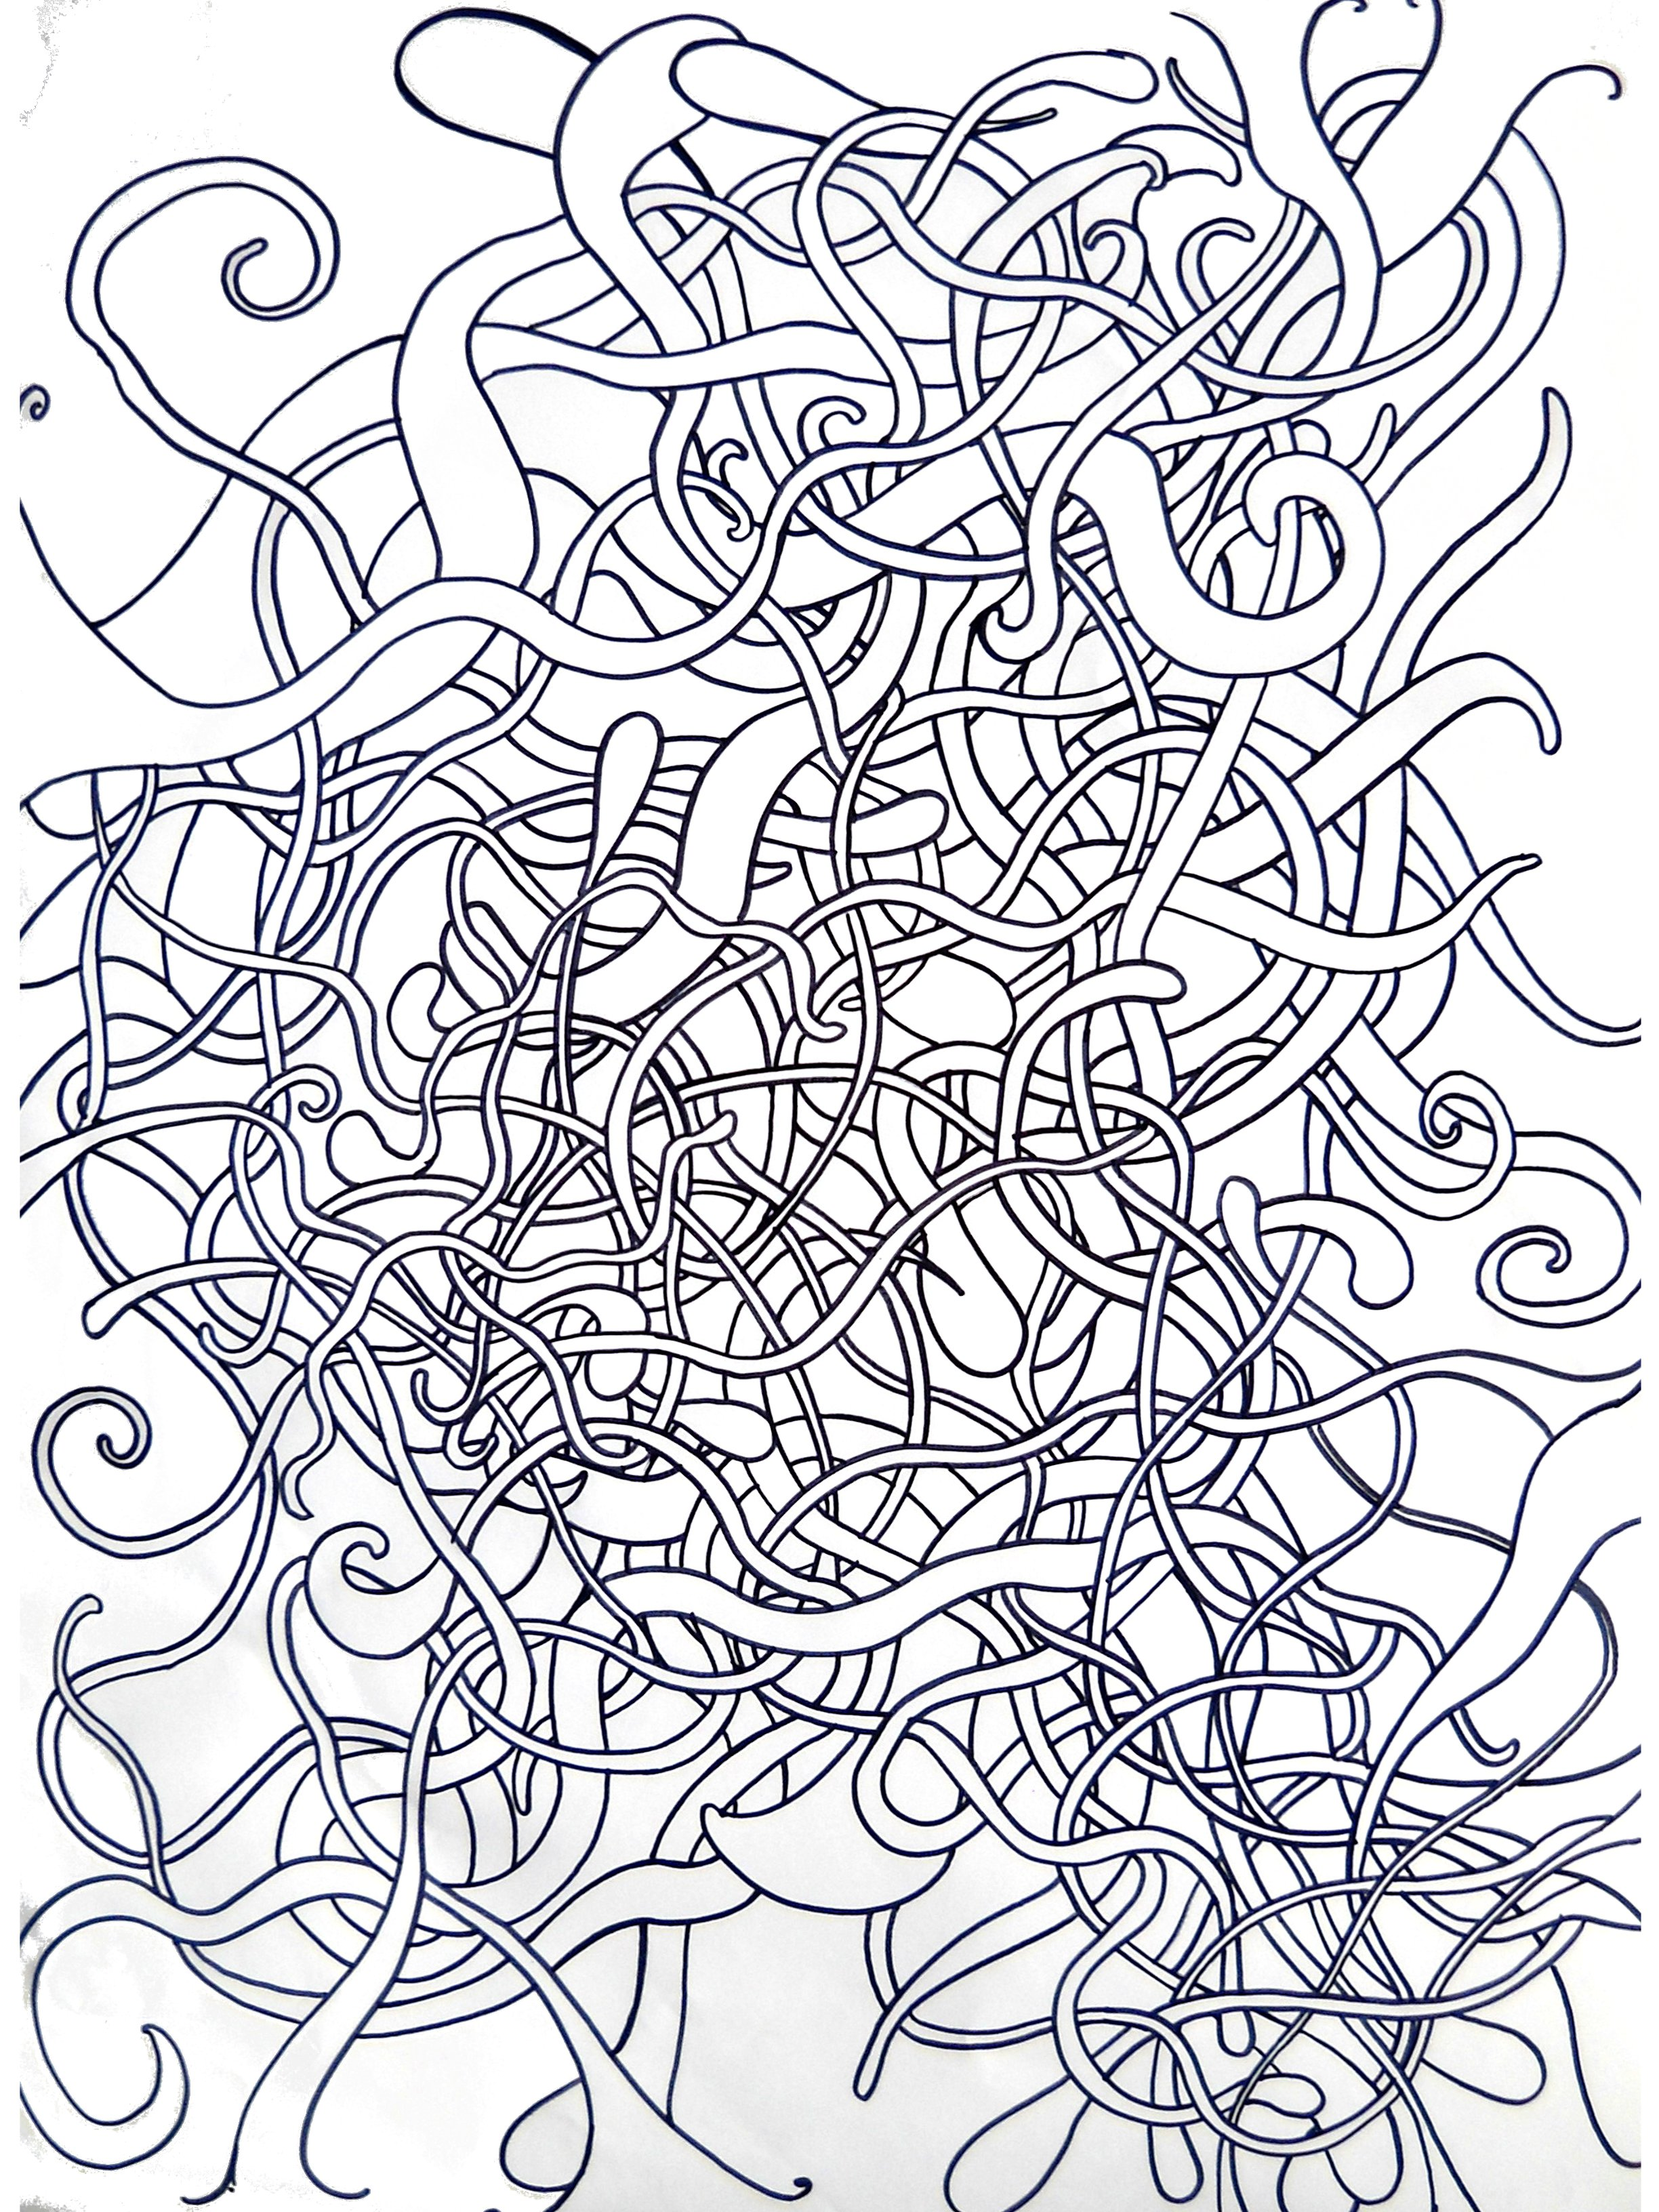 Abstract Line Art : Abstract drawing words with no names